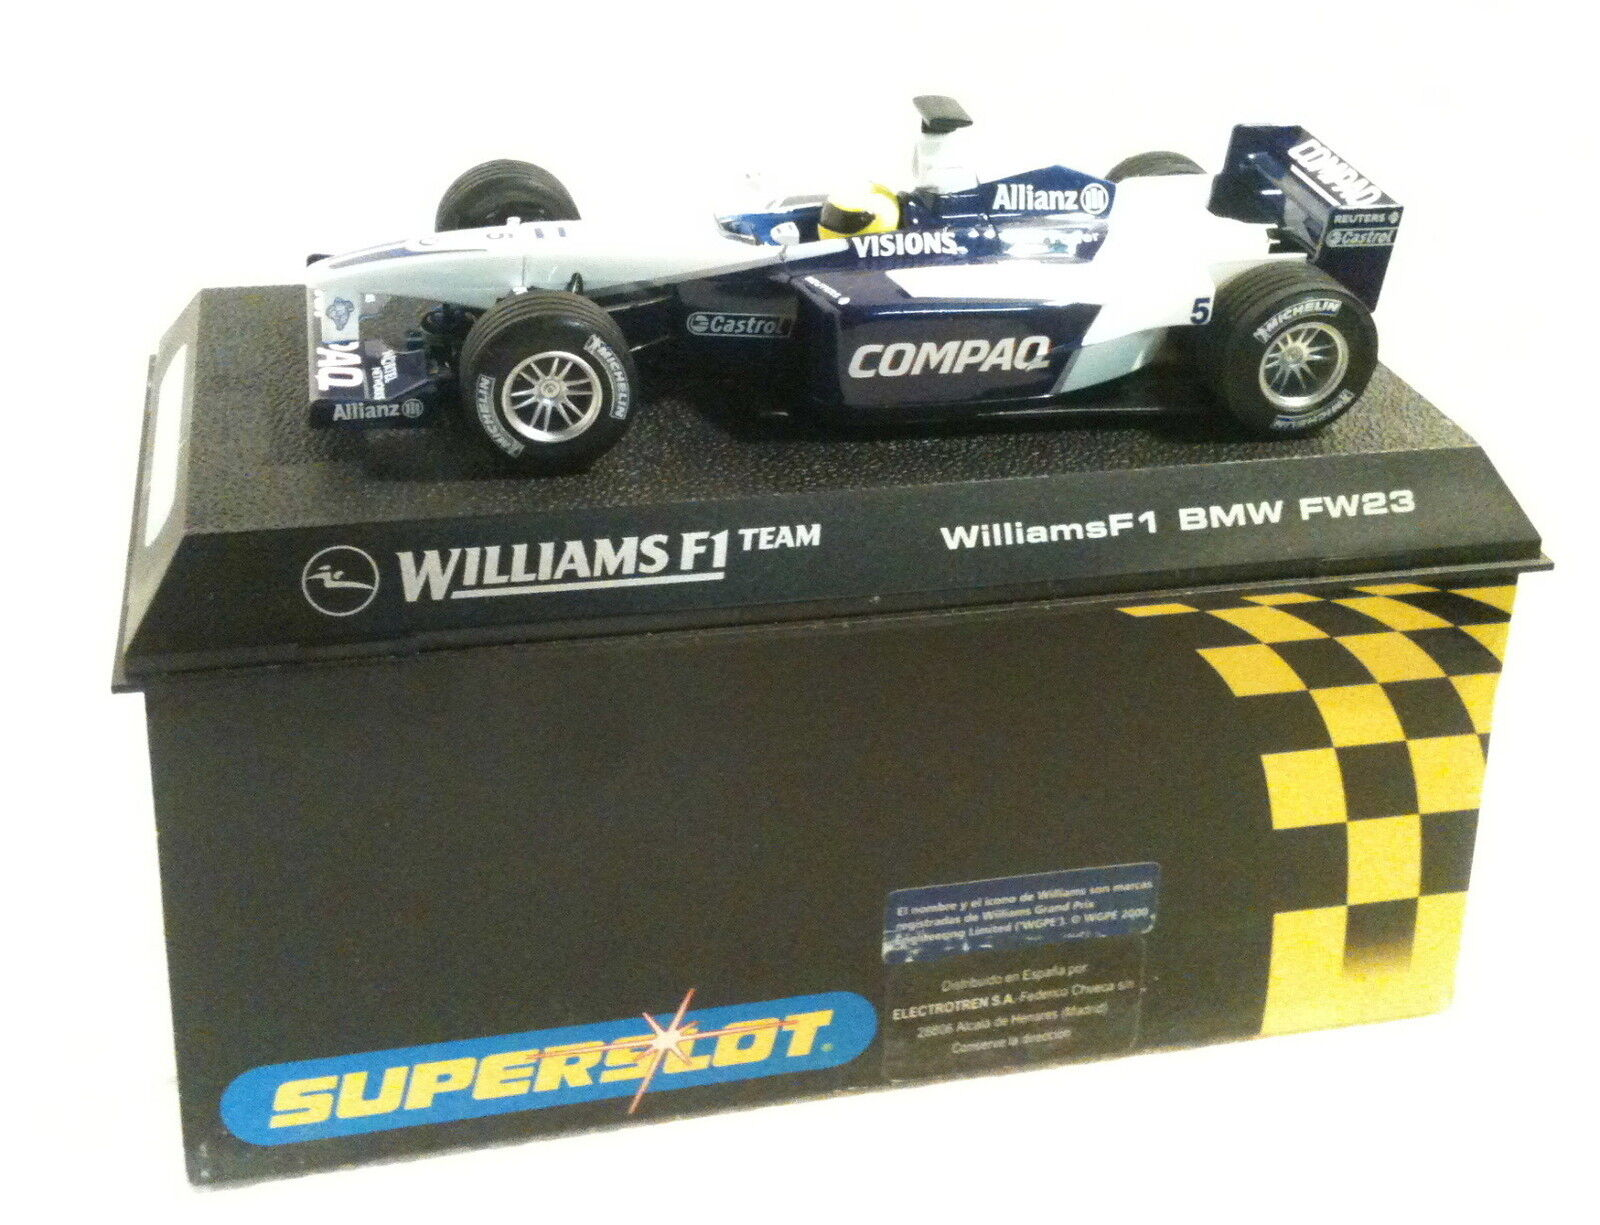 Qq H 2334 SUPERSLOT BMW WILLIAMS F1 FW23 R SCHUMACHER - Scalextric UK